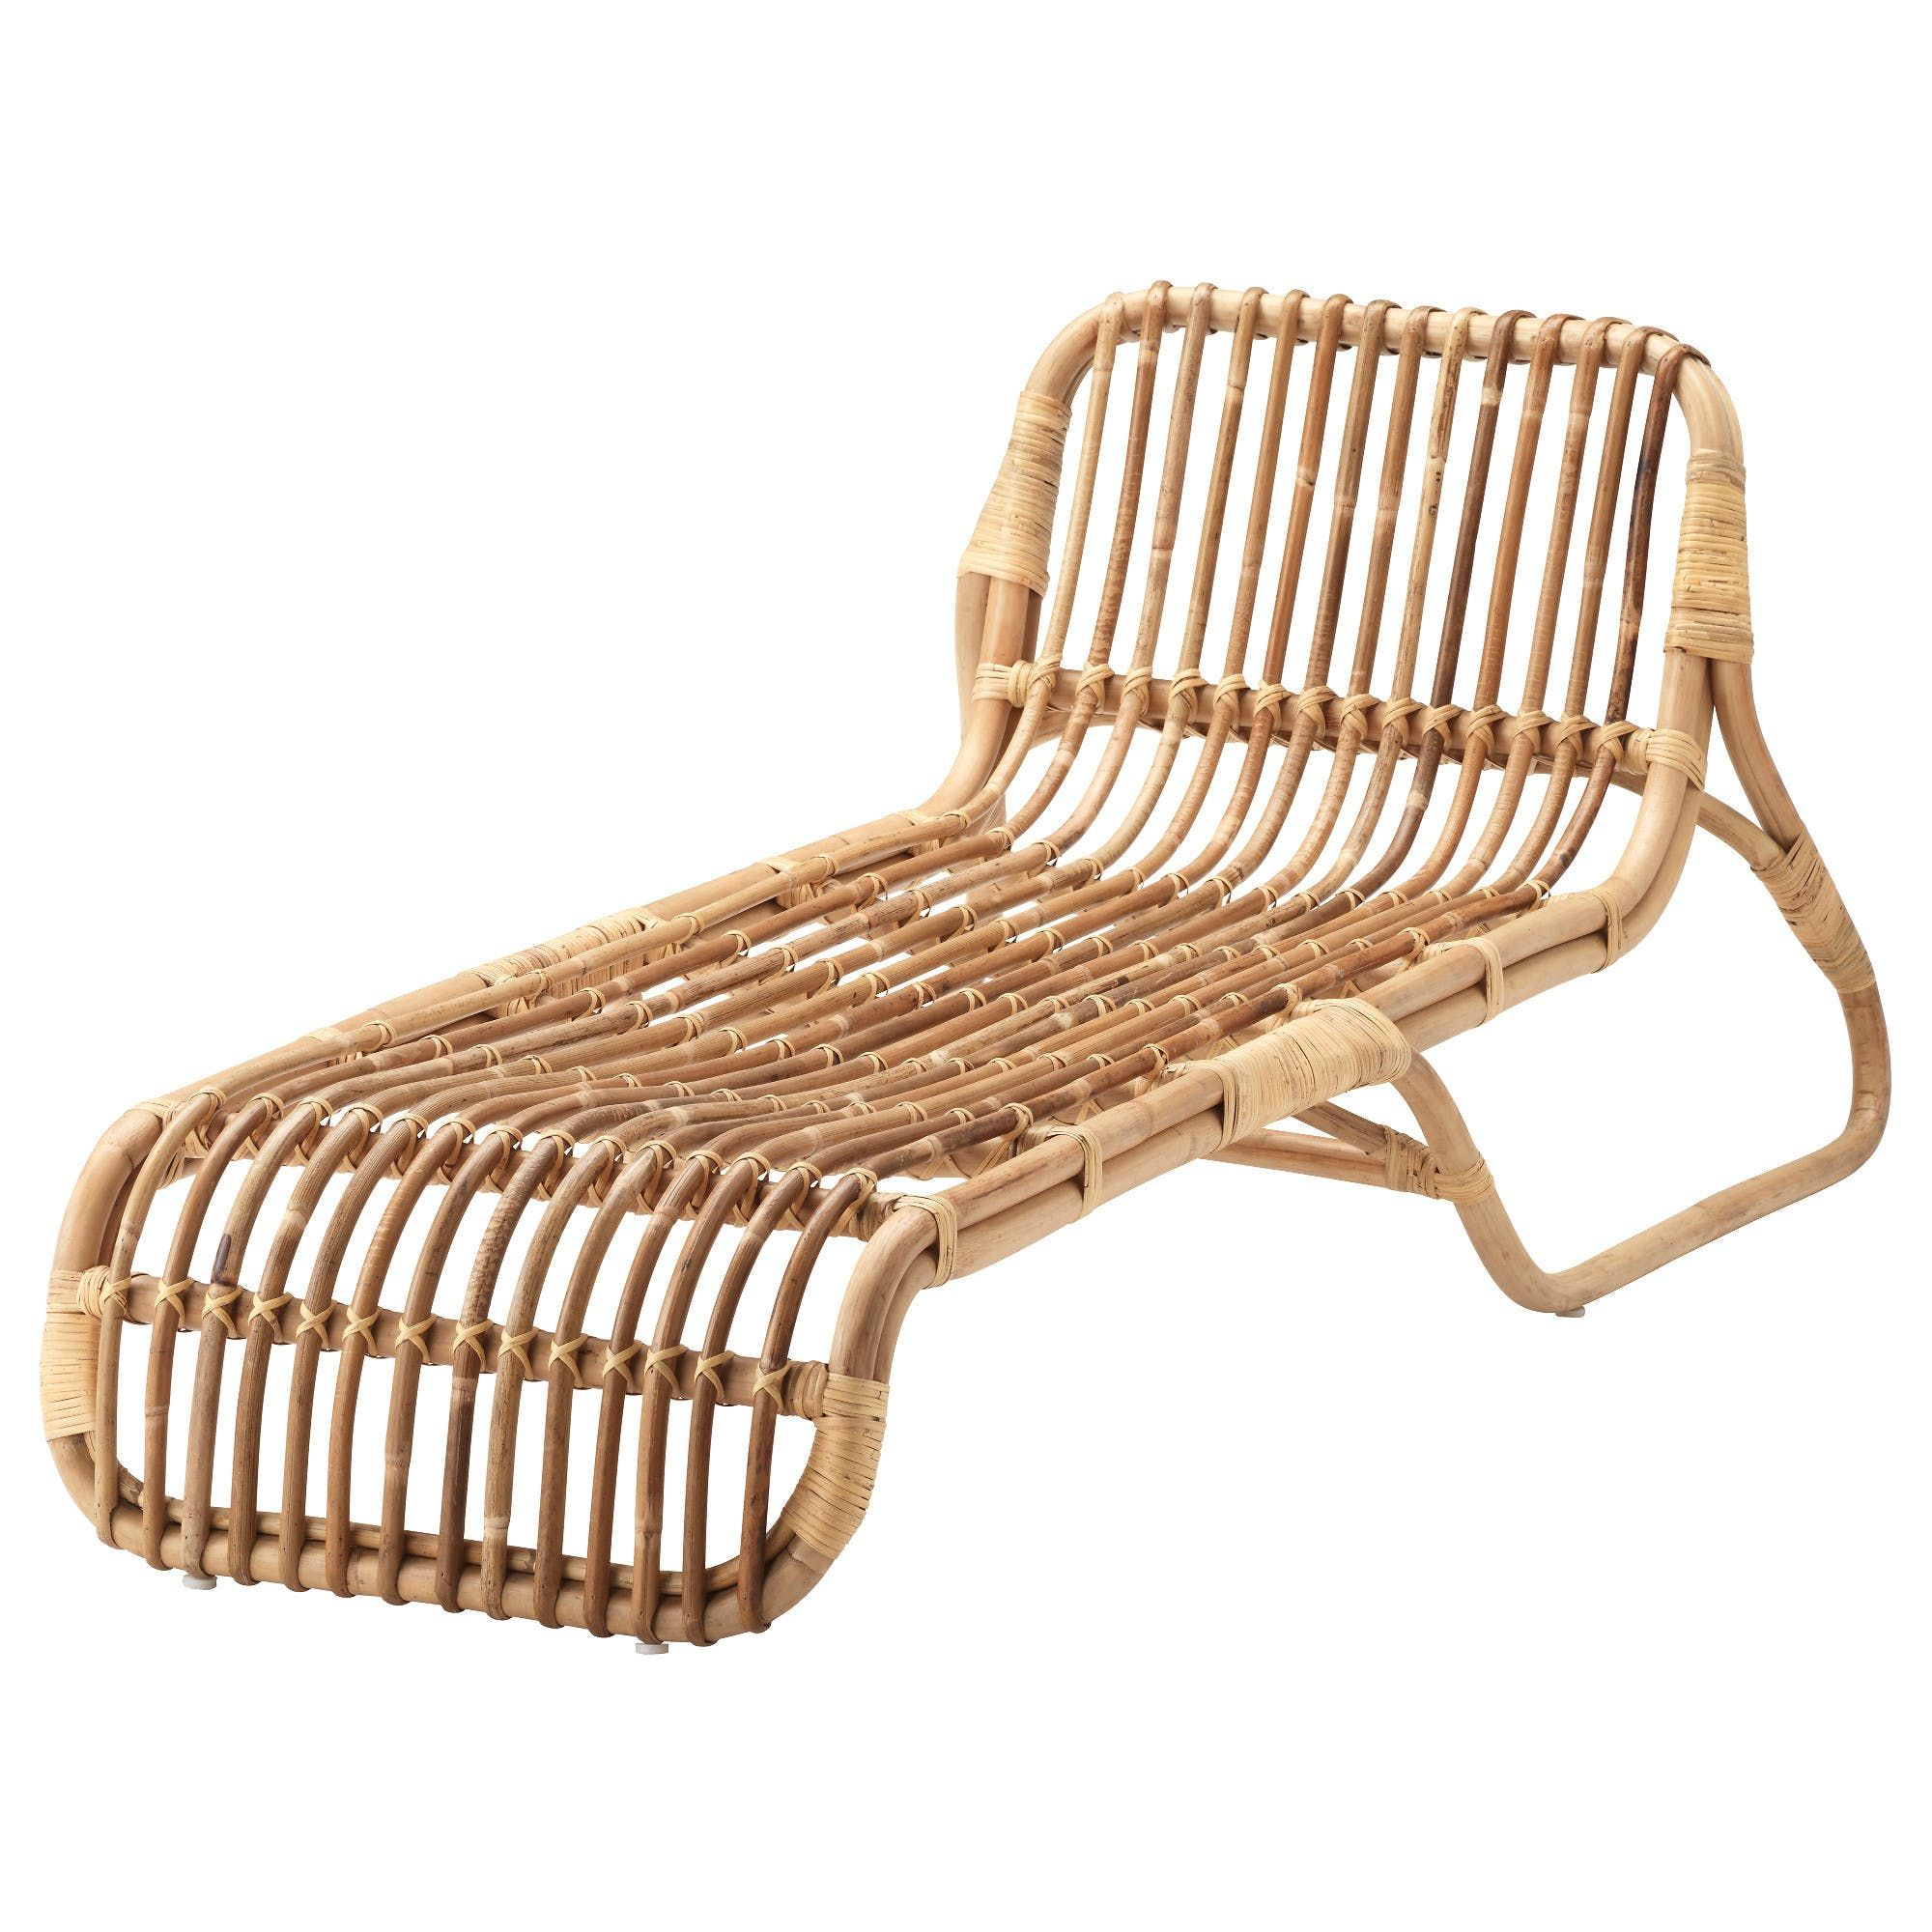 Rattan Relaxliege Ikea Ikea S Limited Edition Jassa Collection Is A Boho Lover S Dream